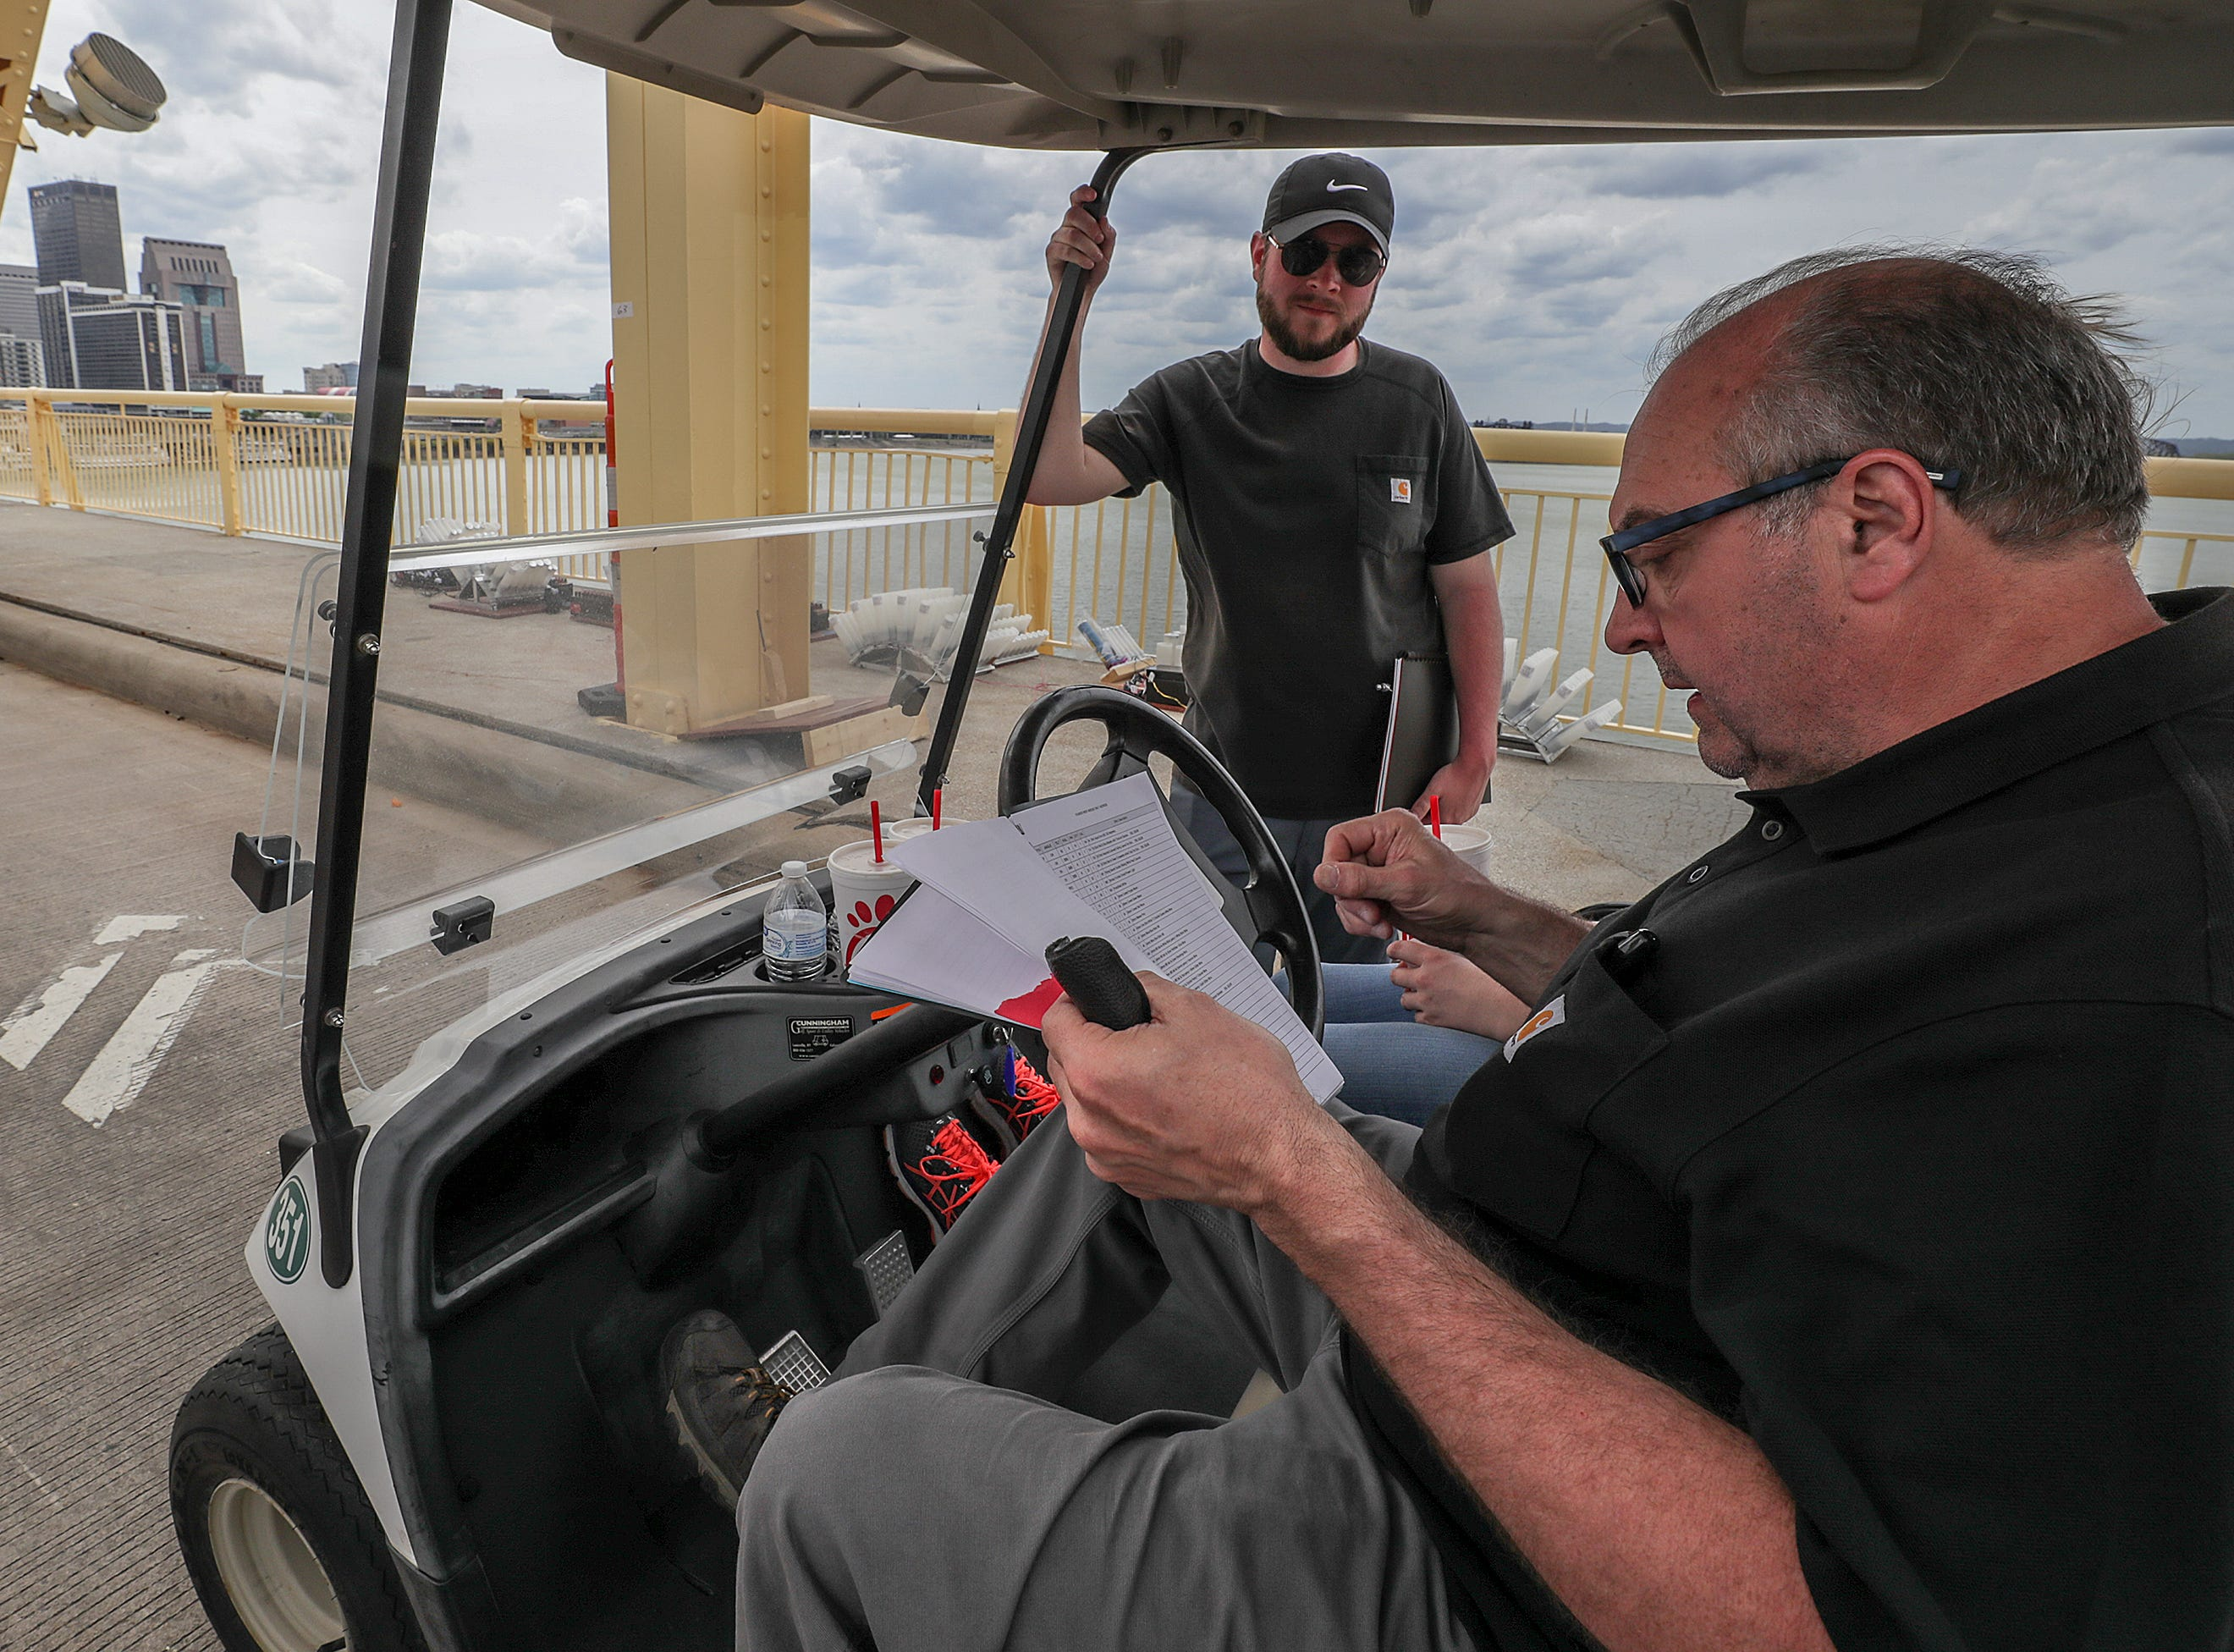 Ralph Piacquadio and David Hunter, with Zambelli, co-designers of the fireworks display for Thunder over Louisville, look over notes as crews begin to place fireworks along the Clark Memorial Bridge on Thursday afternoon.